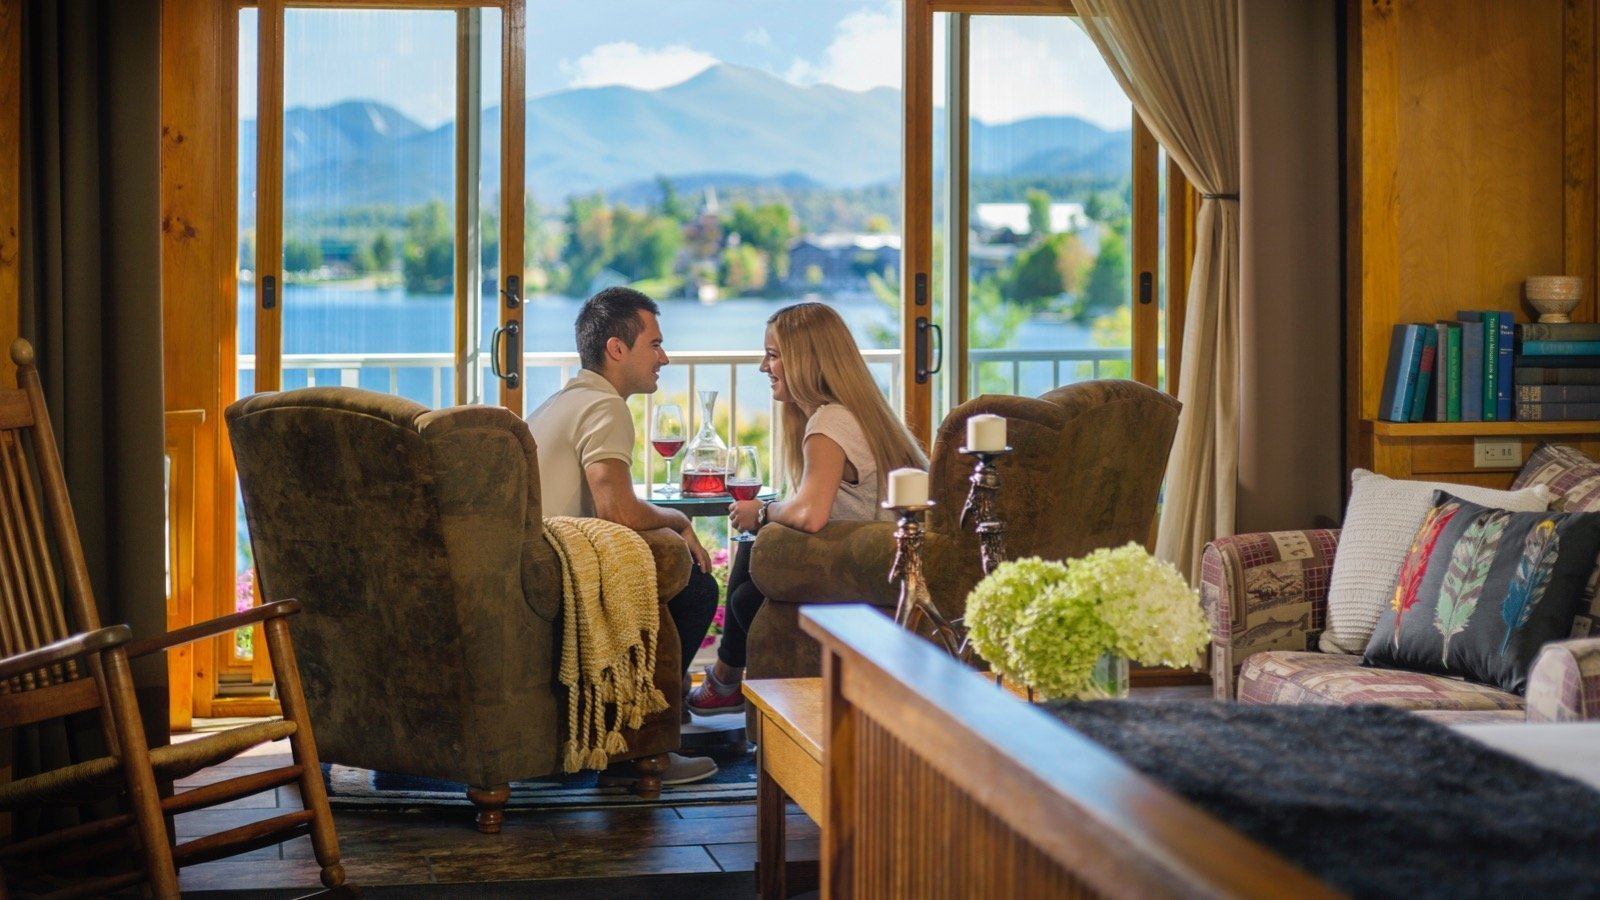 Couple sharing a drink in a room near the patio doors